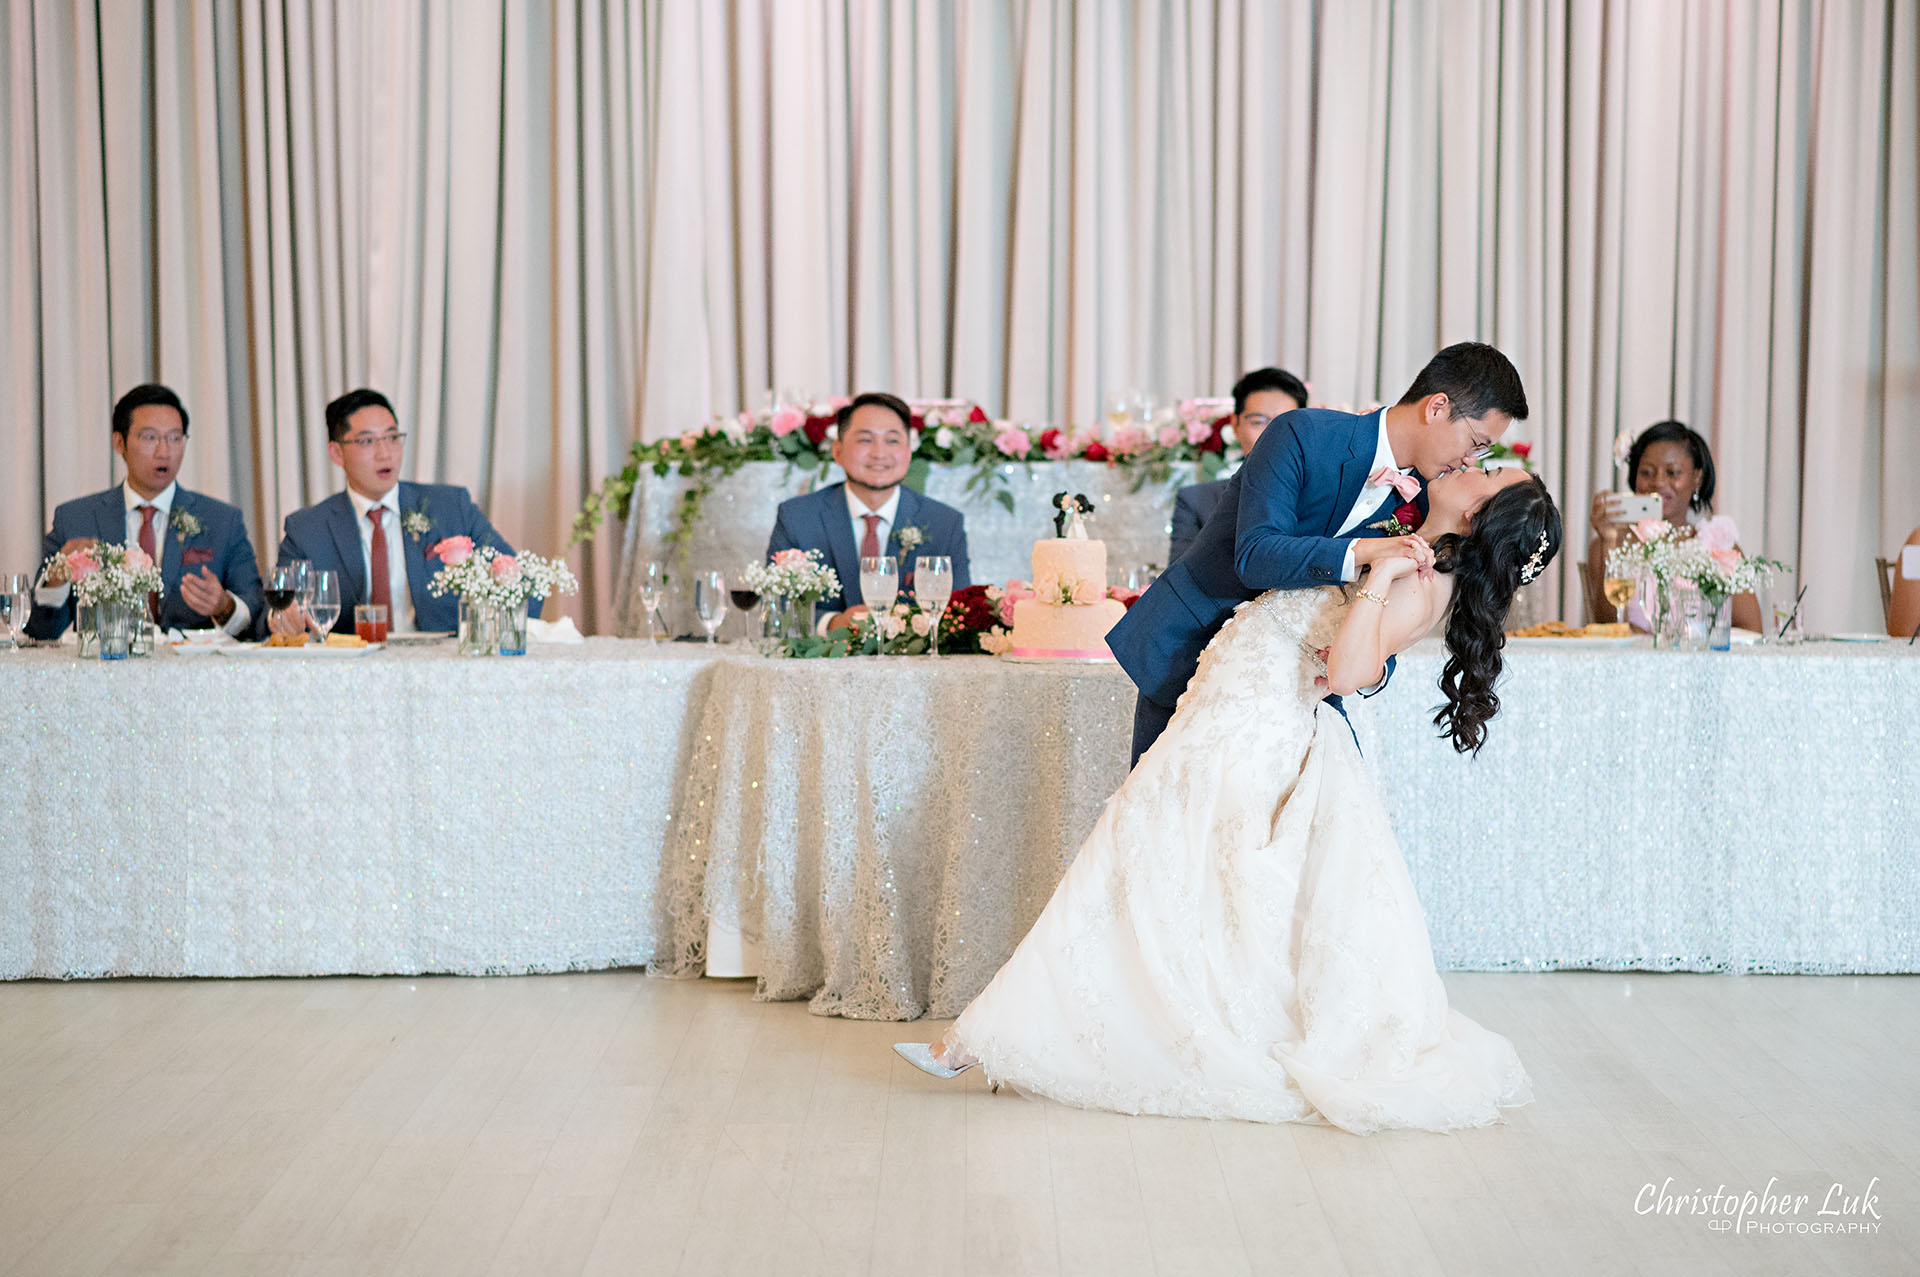 Christopher Luk Toronto Wedding Photographer Bridle Trail Baptist Church Unionville Main Street Crystal Fountain Event Venue Head Table Decor Flower Bell by Masami Crystal Linen Setup Wide Stage Curtains Bride Groom First Dance Dip Kiss Hug